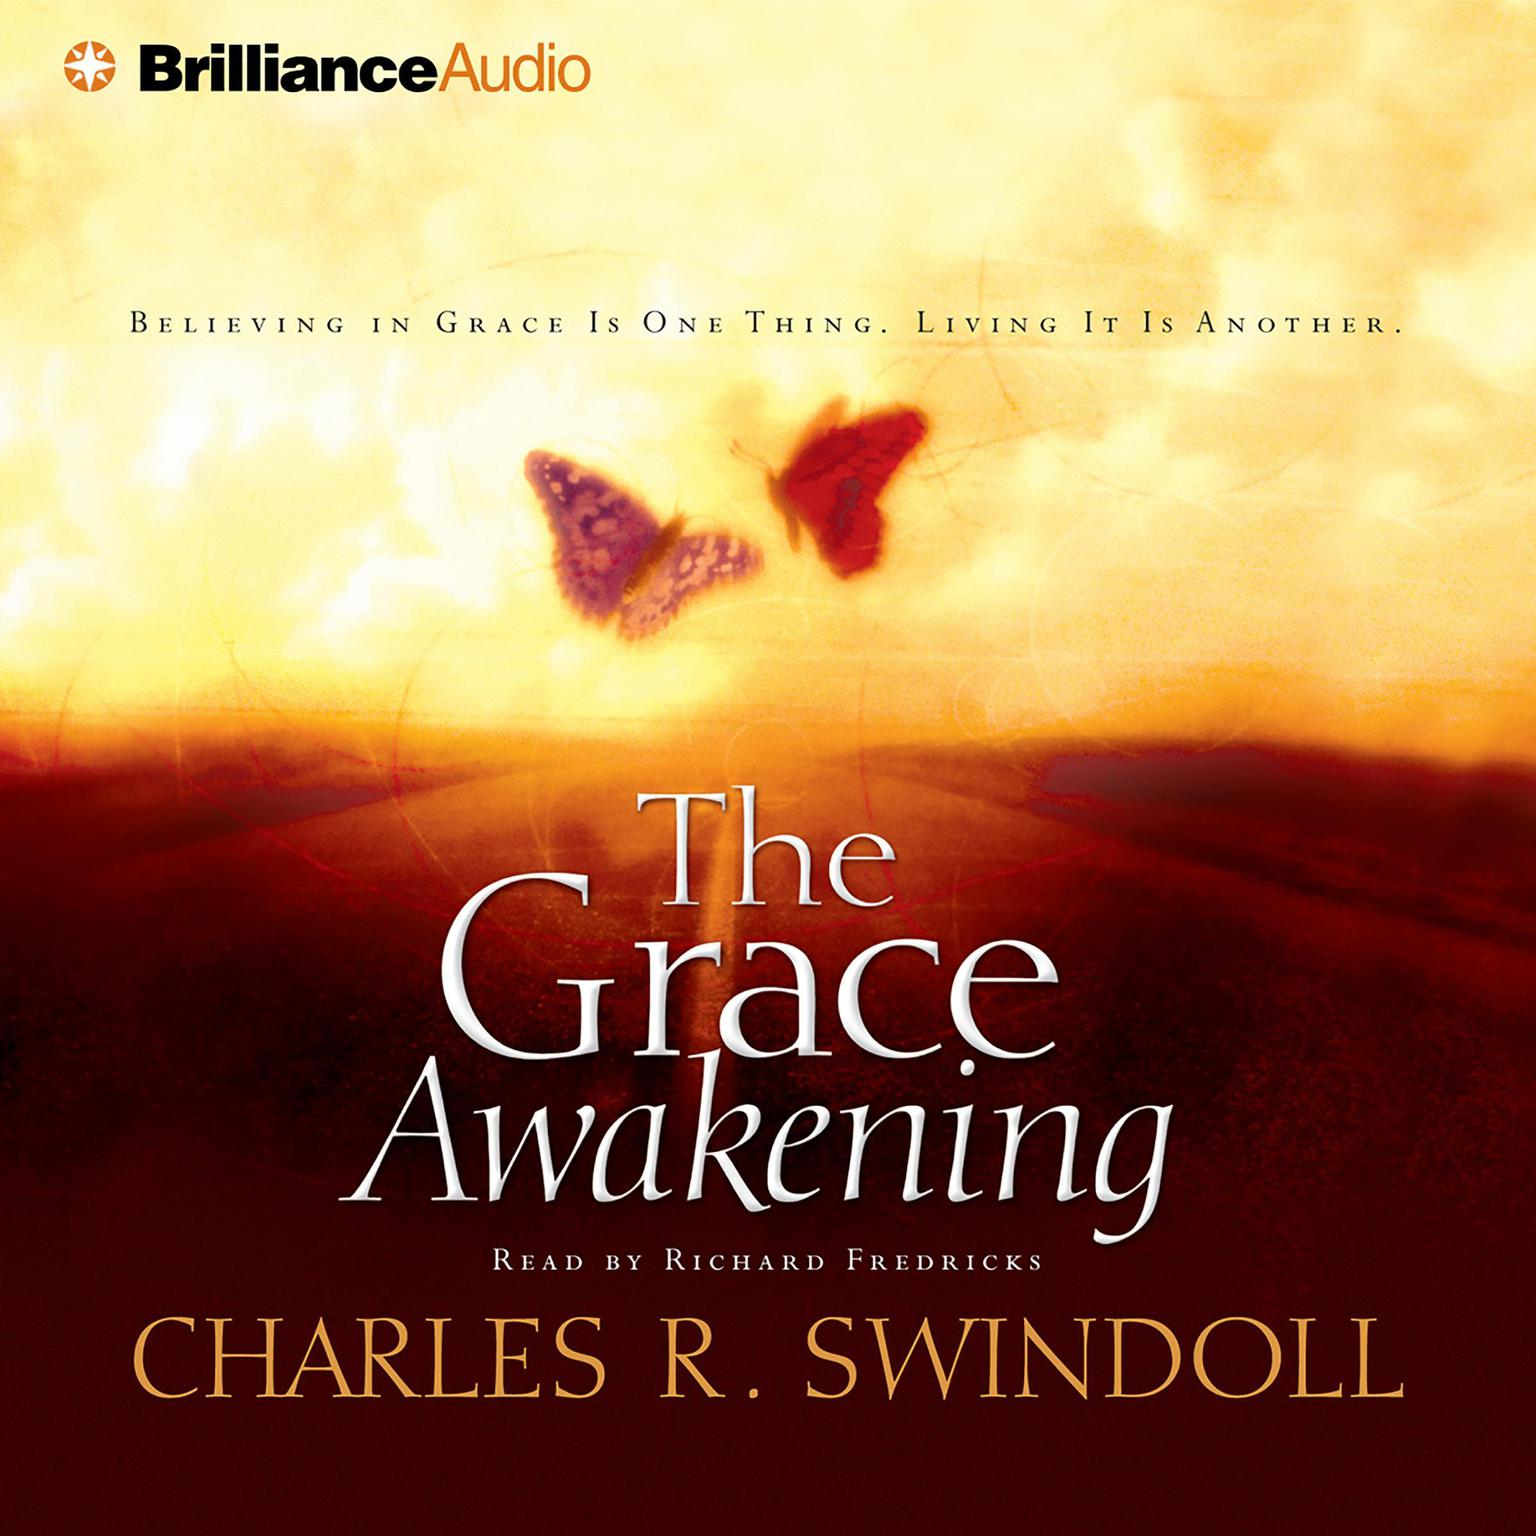 Printable The Grace Awakening: Believing in Grace Is One Thing. Living It Is Another. Audiobook Cover Art